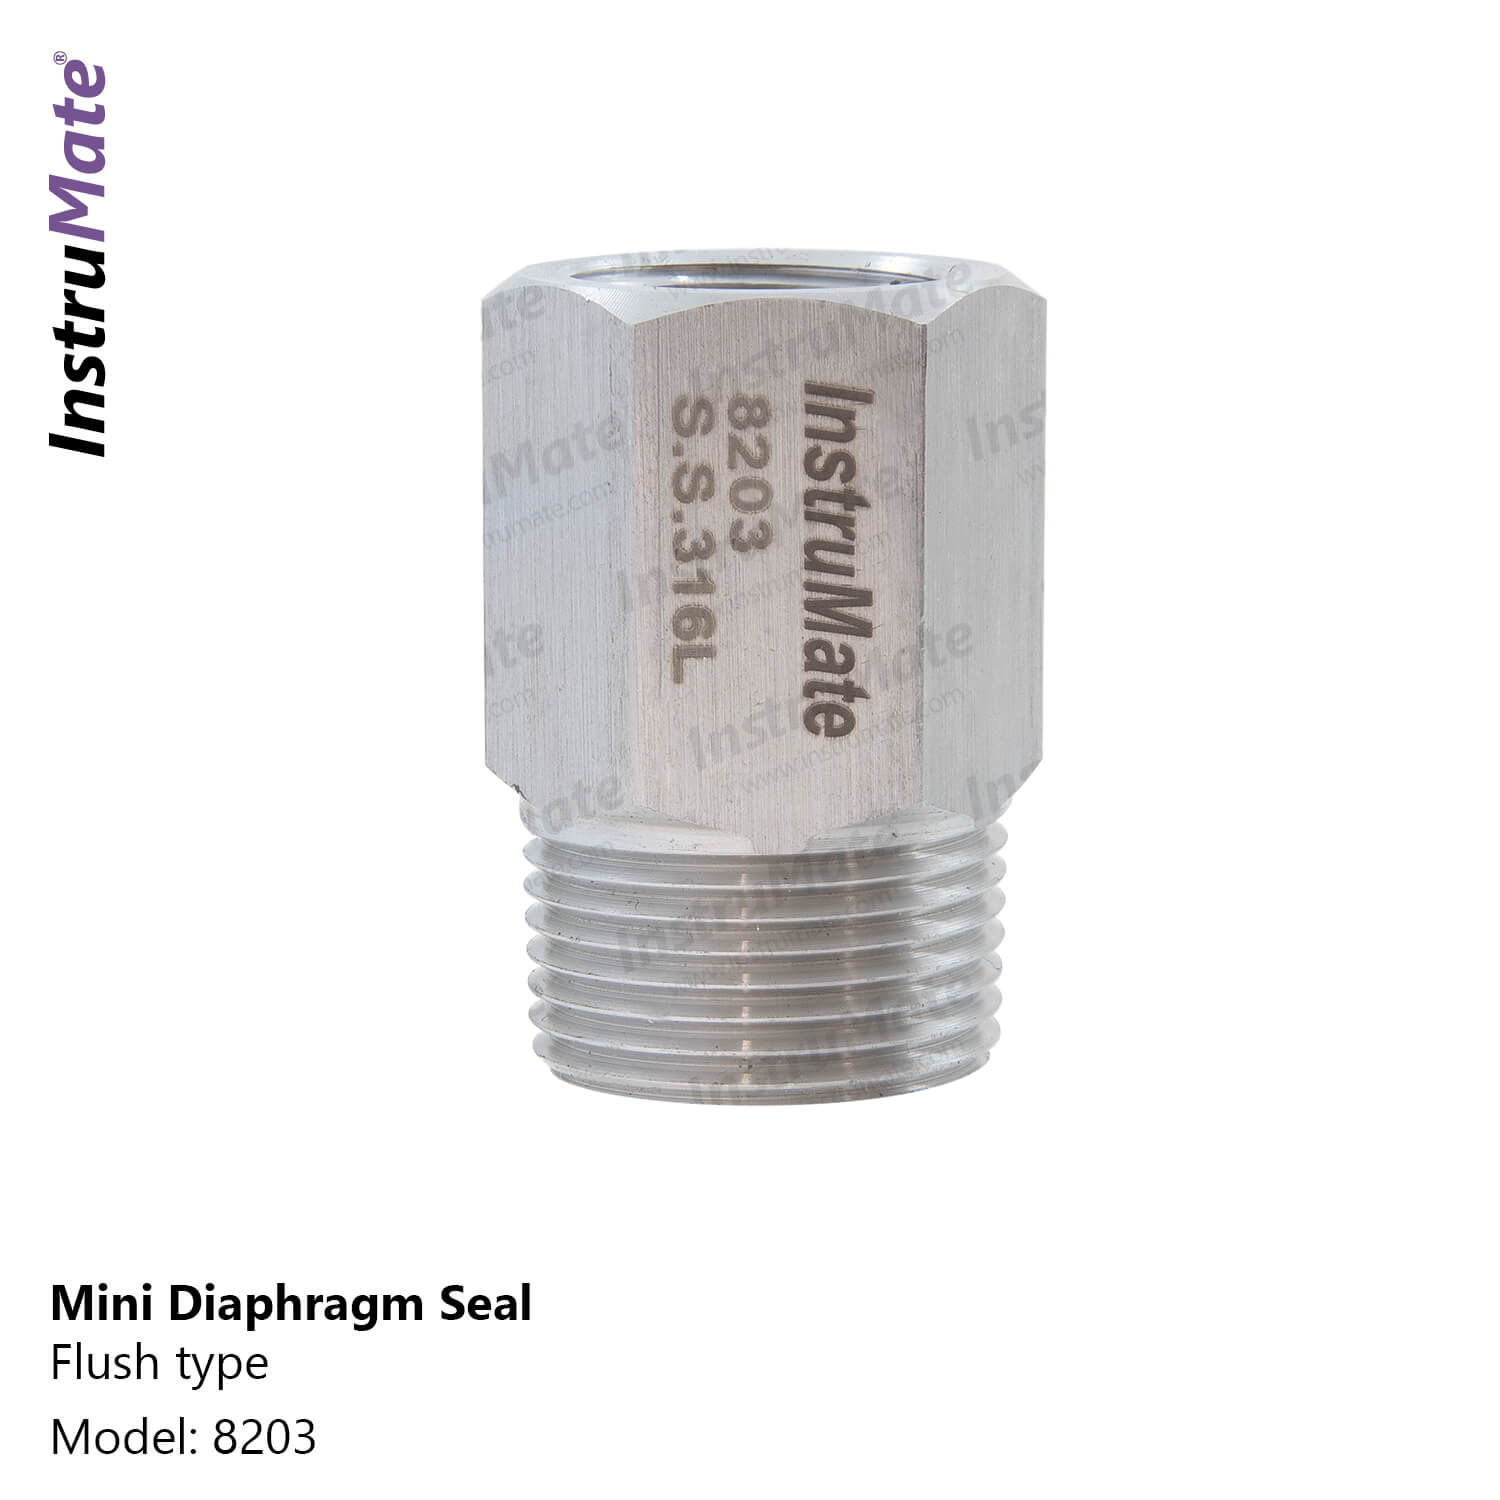 Mini Diaphragm Seal - 8203 - InstruMate